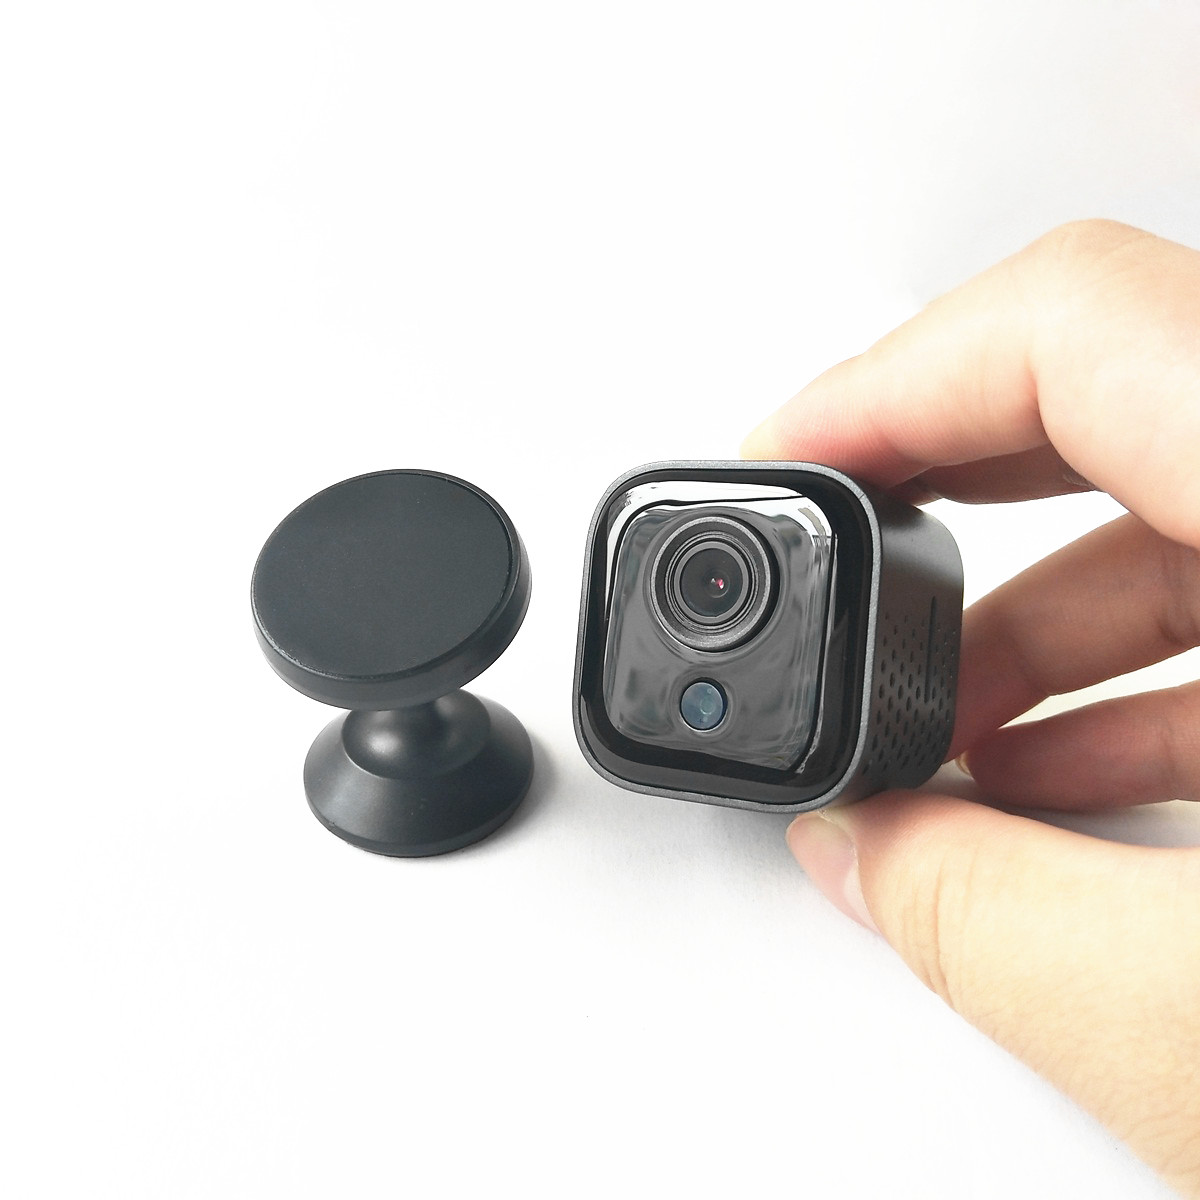 Home CCTV Security <strong>Wifi</strong> <strong>Mini</strong> <strong>Camera</strong> Stable IP P2P Live Stream View Surveillance Cam Wireless Magnetic For Drone